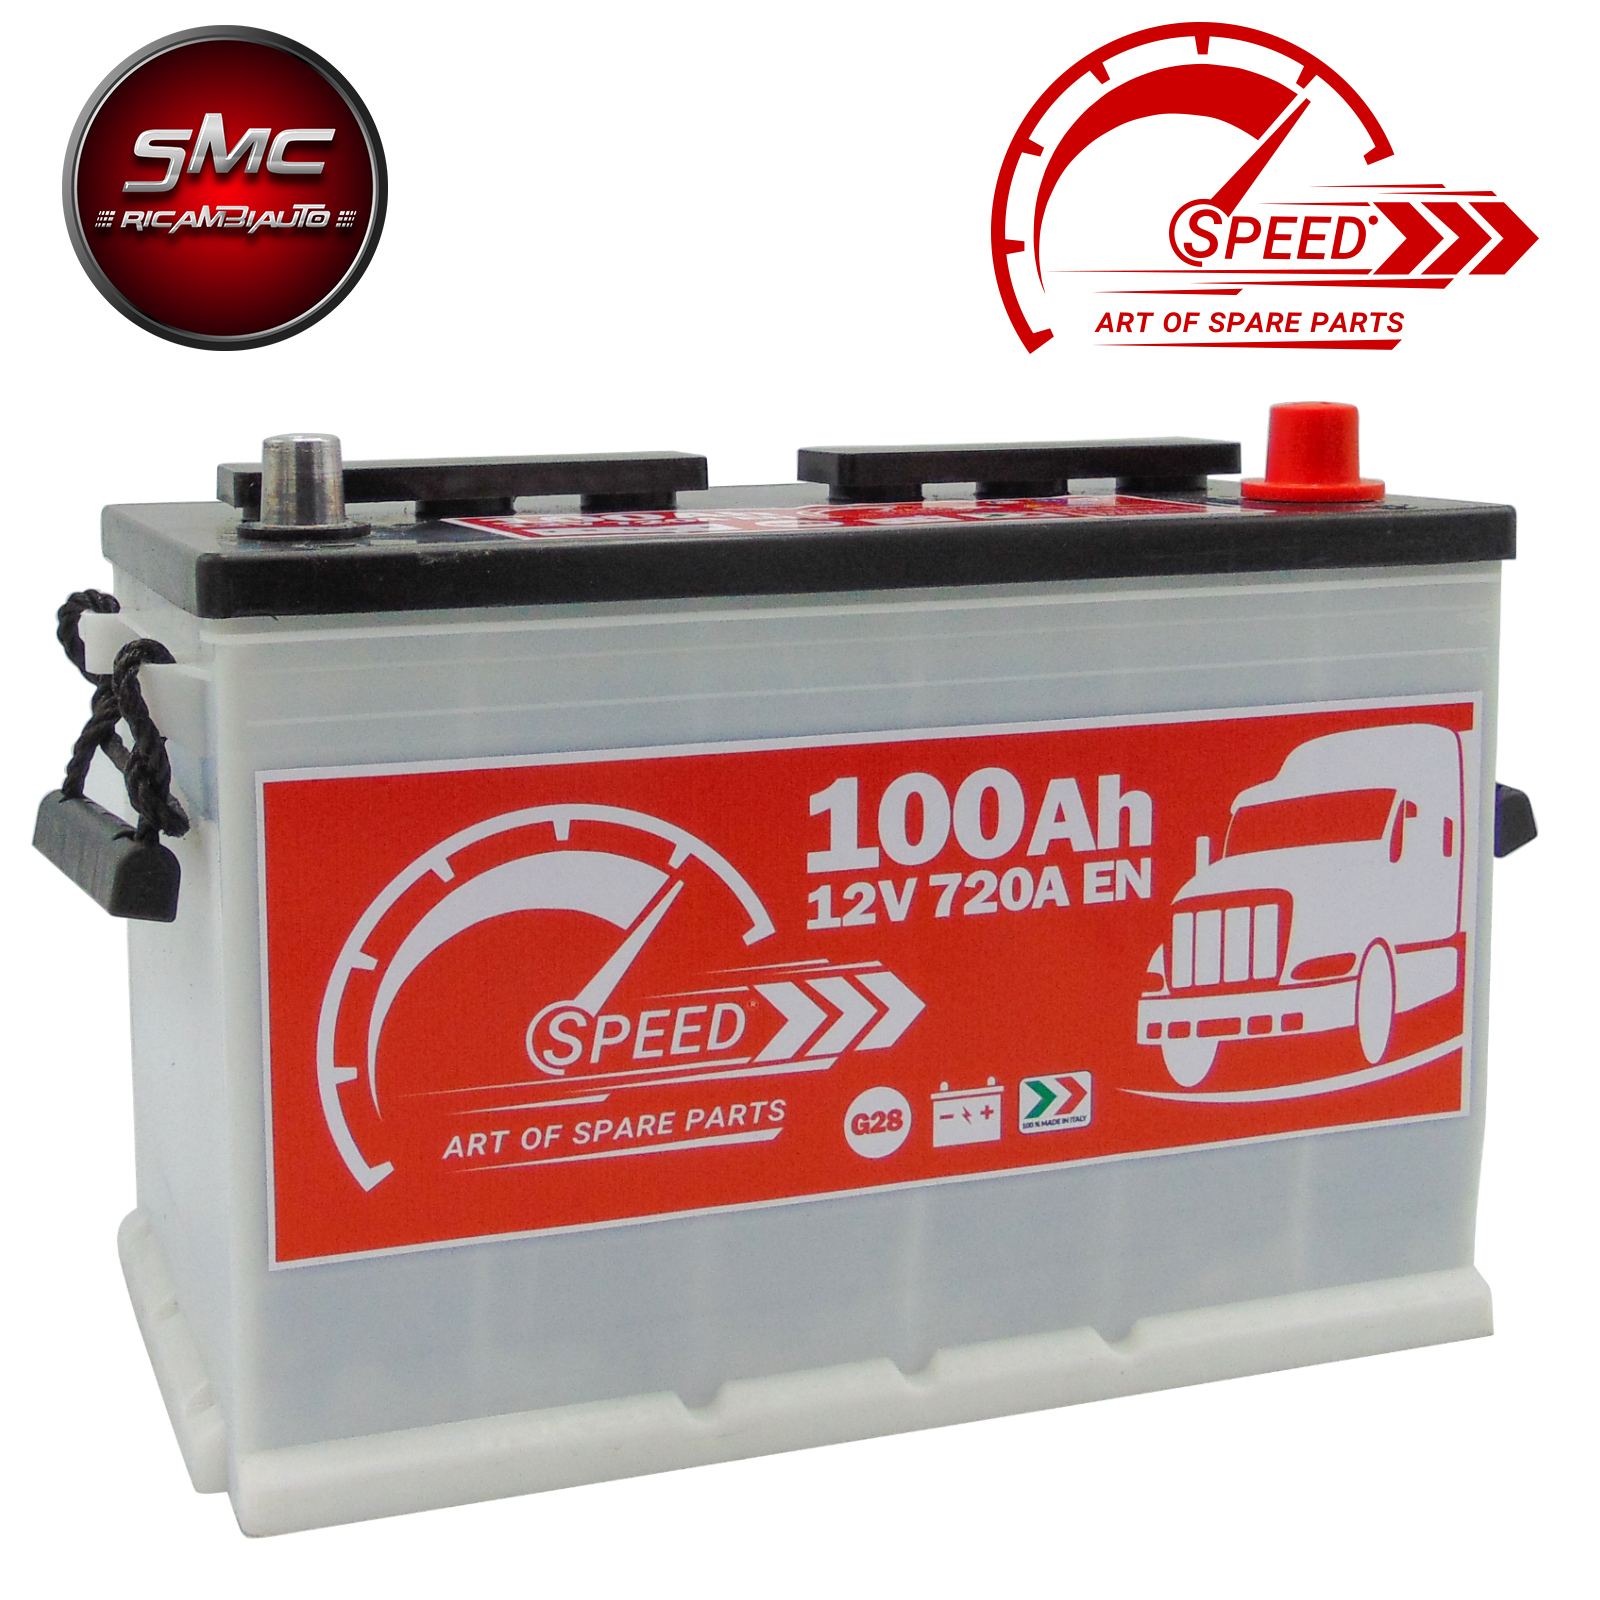 BATTERIA SPEED G28 100AH 720A 12V